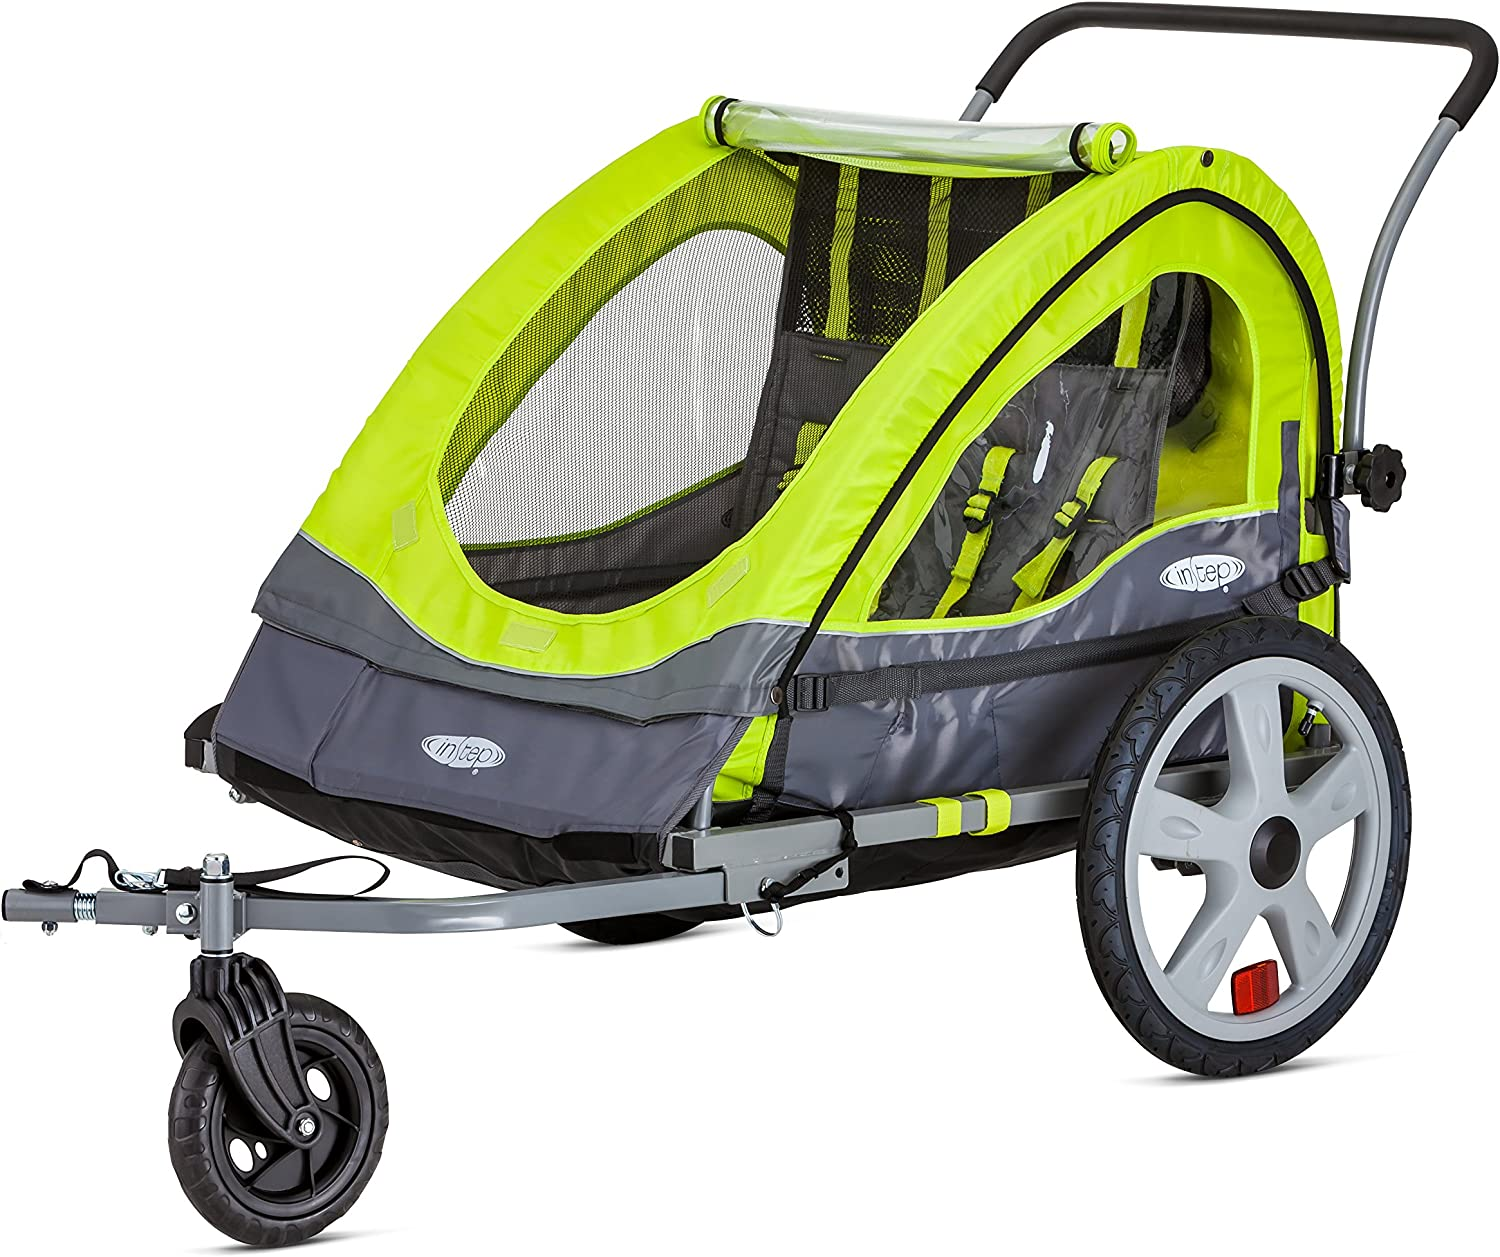 best bike trailer for kids: Instep Quick-N-EZ Double Tow Behind Bike Trailer